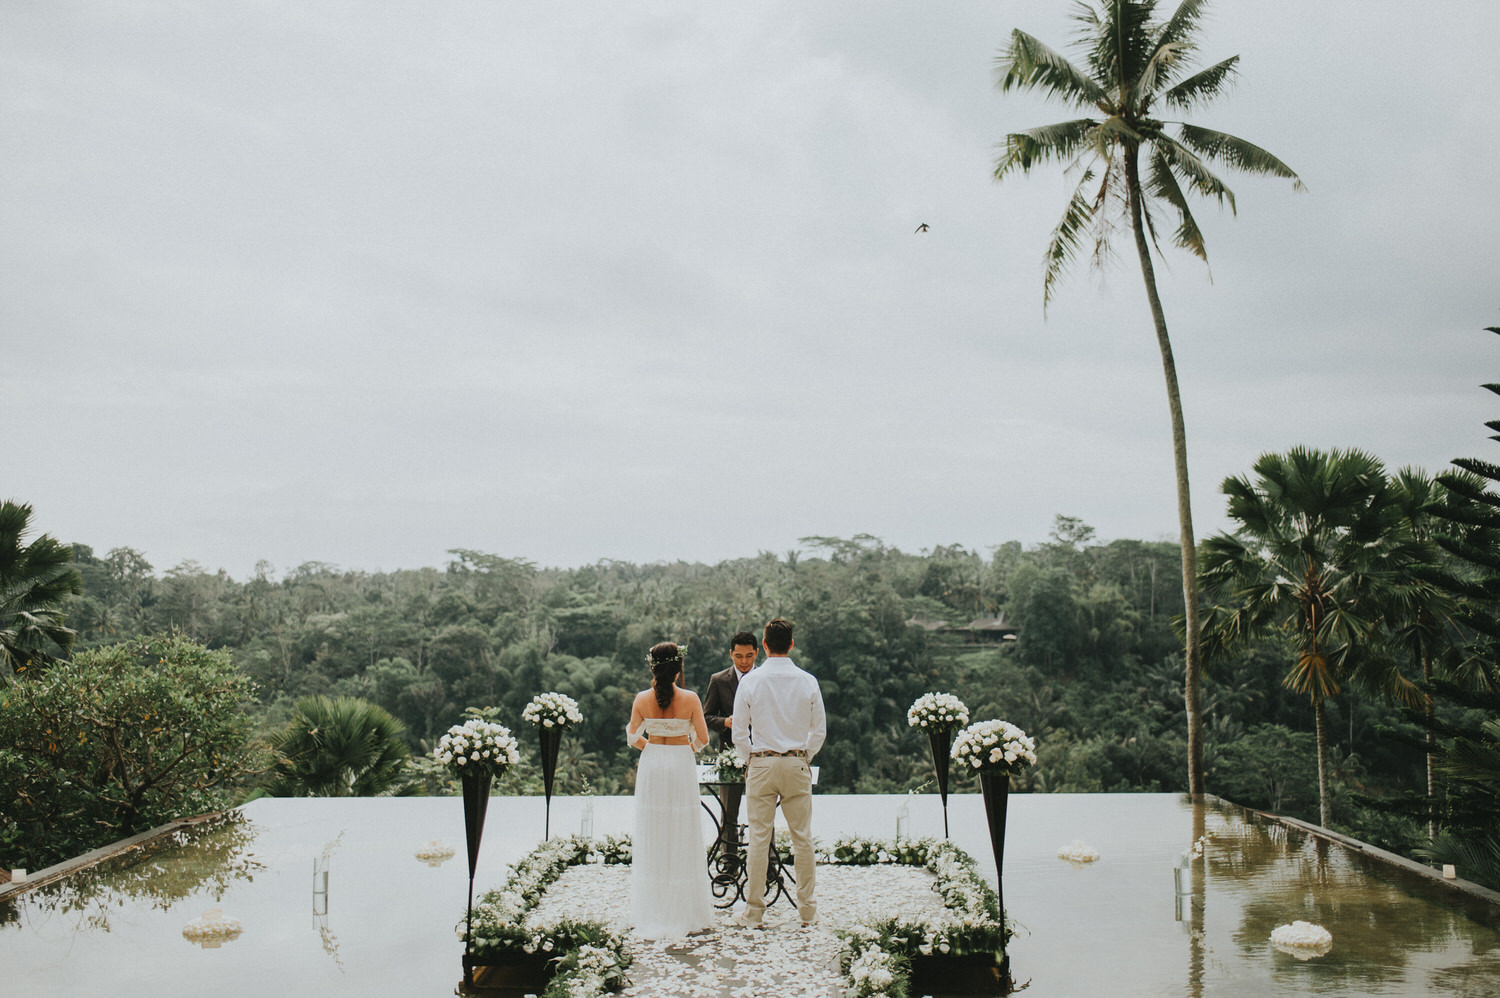 bali wedding - elopement - ubud wedding - diktatphotography - olga + Jason - 50